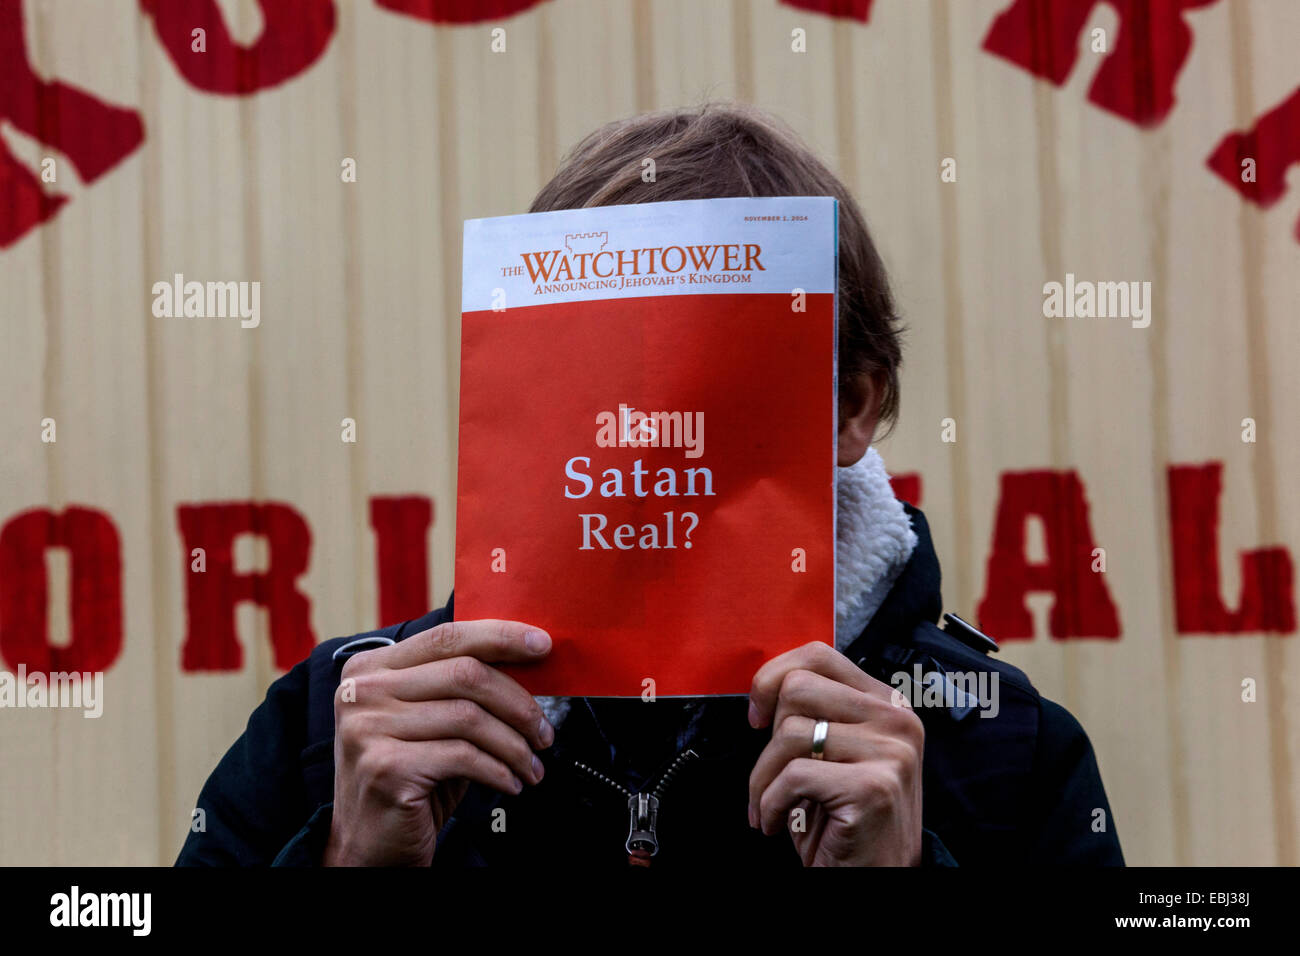 Is Satan real ? watchtower  Jehovah's Witnesses Czech Republic - Stock Image